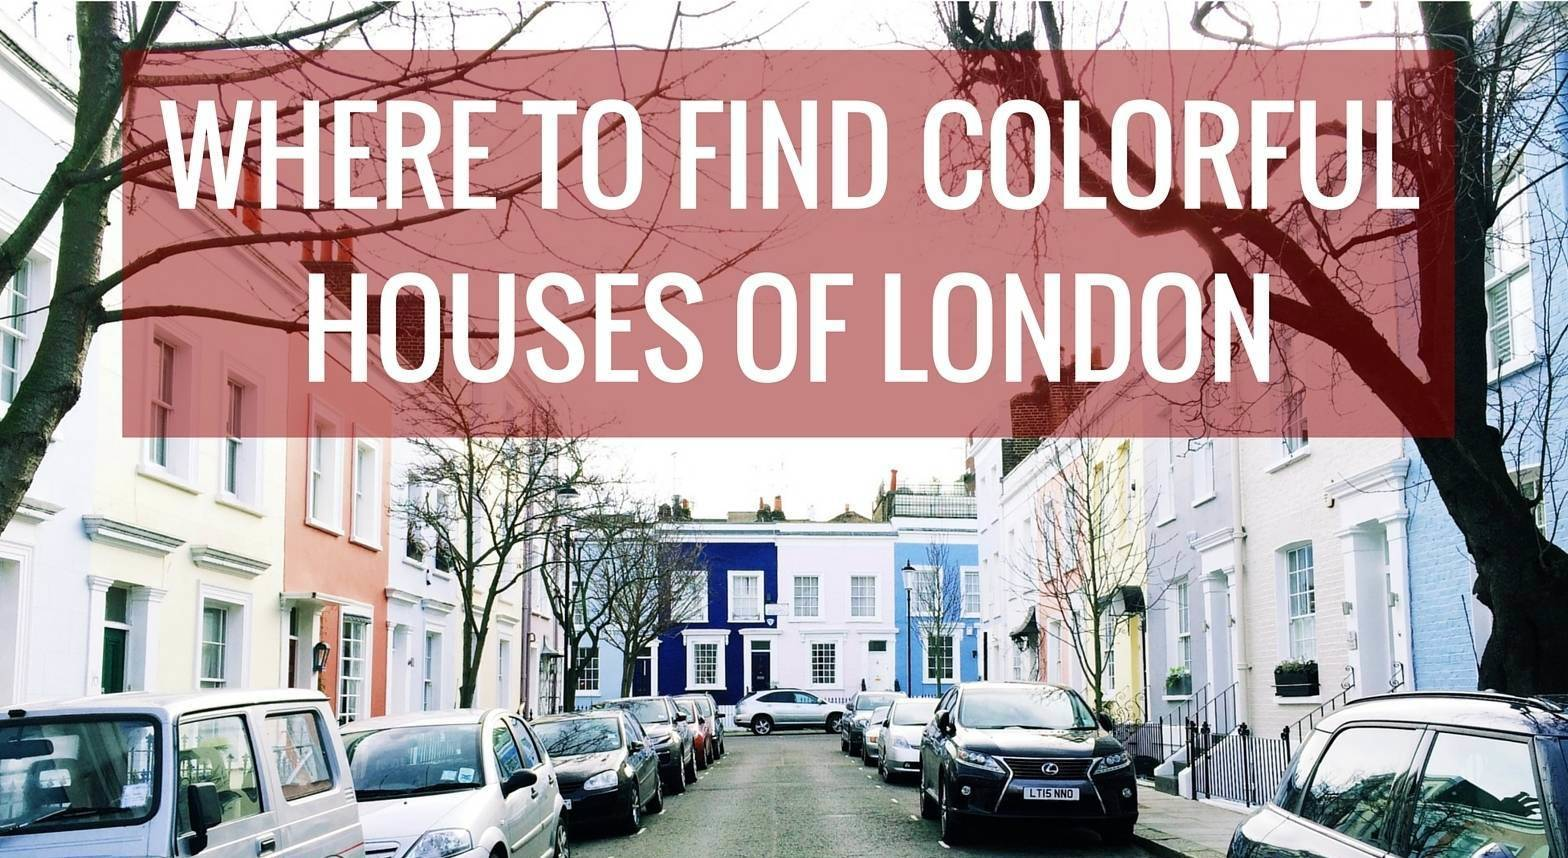 where-to-find-colorful-houses-of-london-download